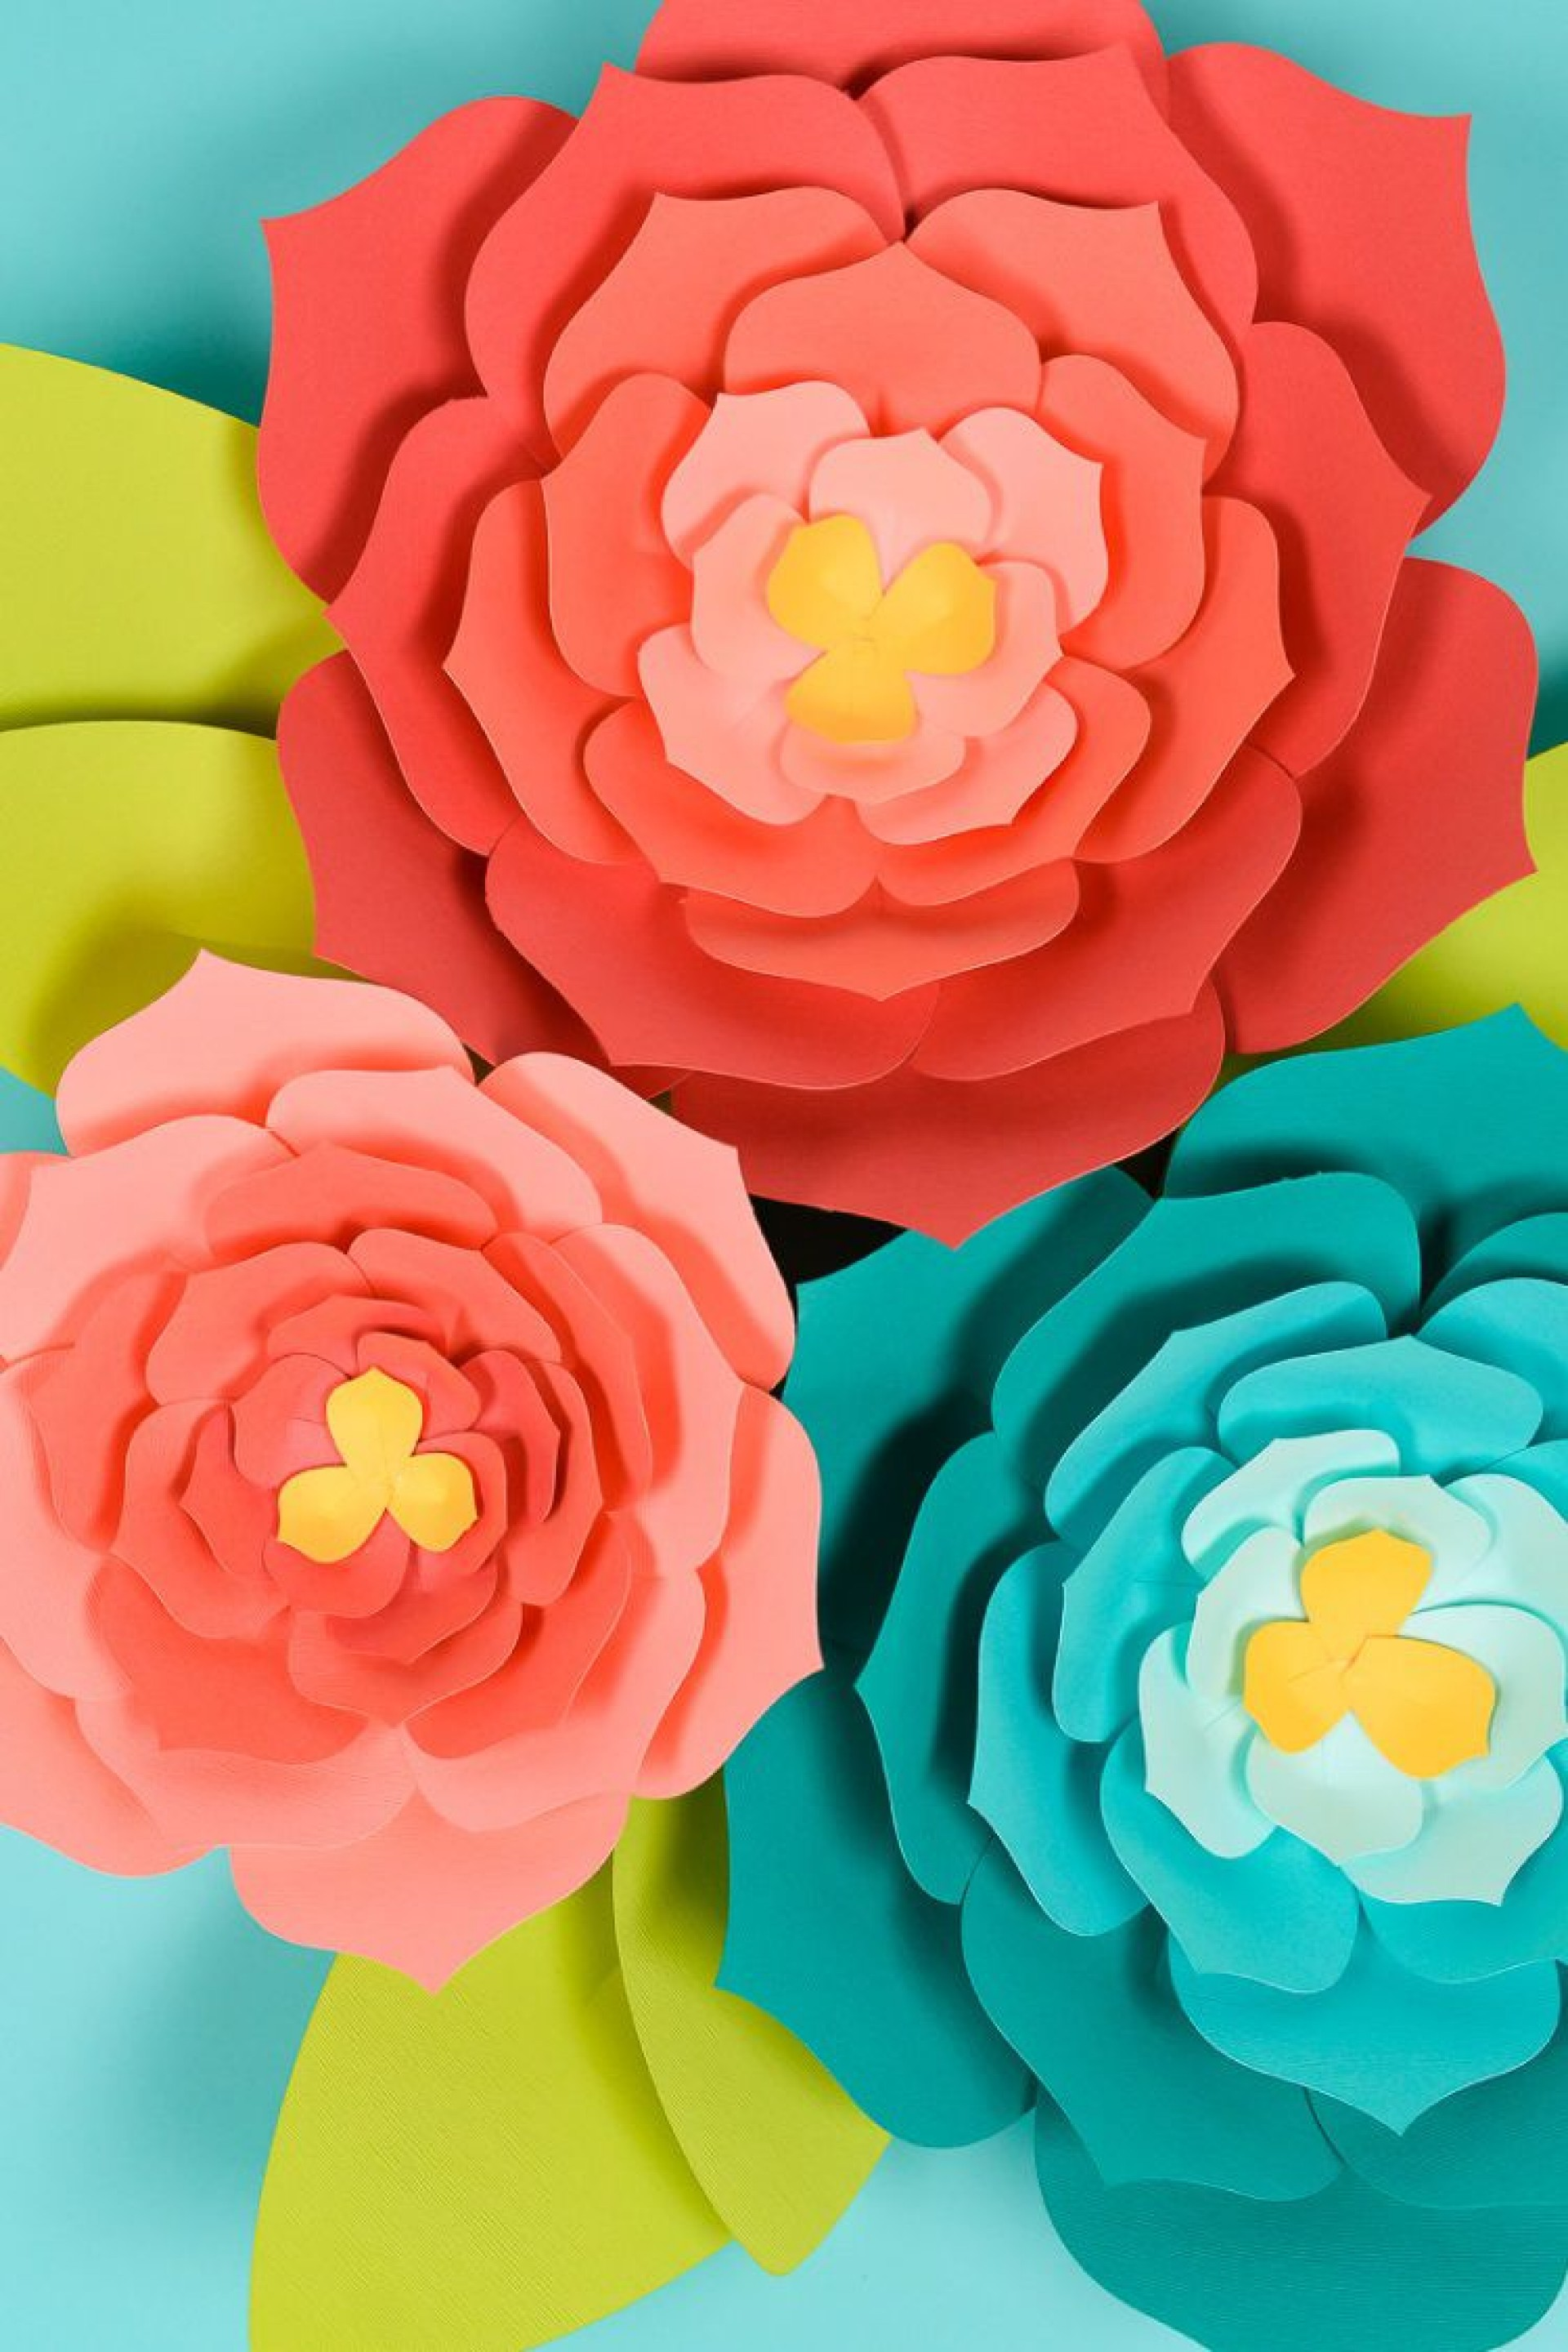 008 Fearsome Giant Paper Flower Template Free Download Sample 1920